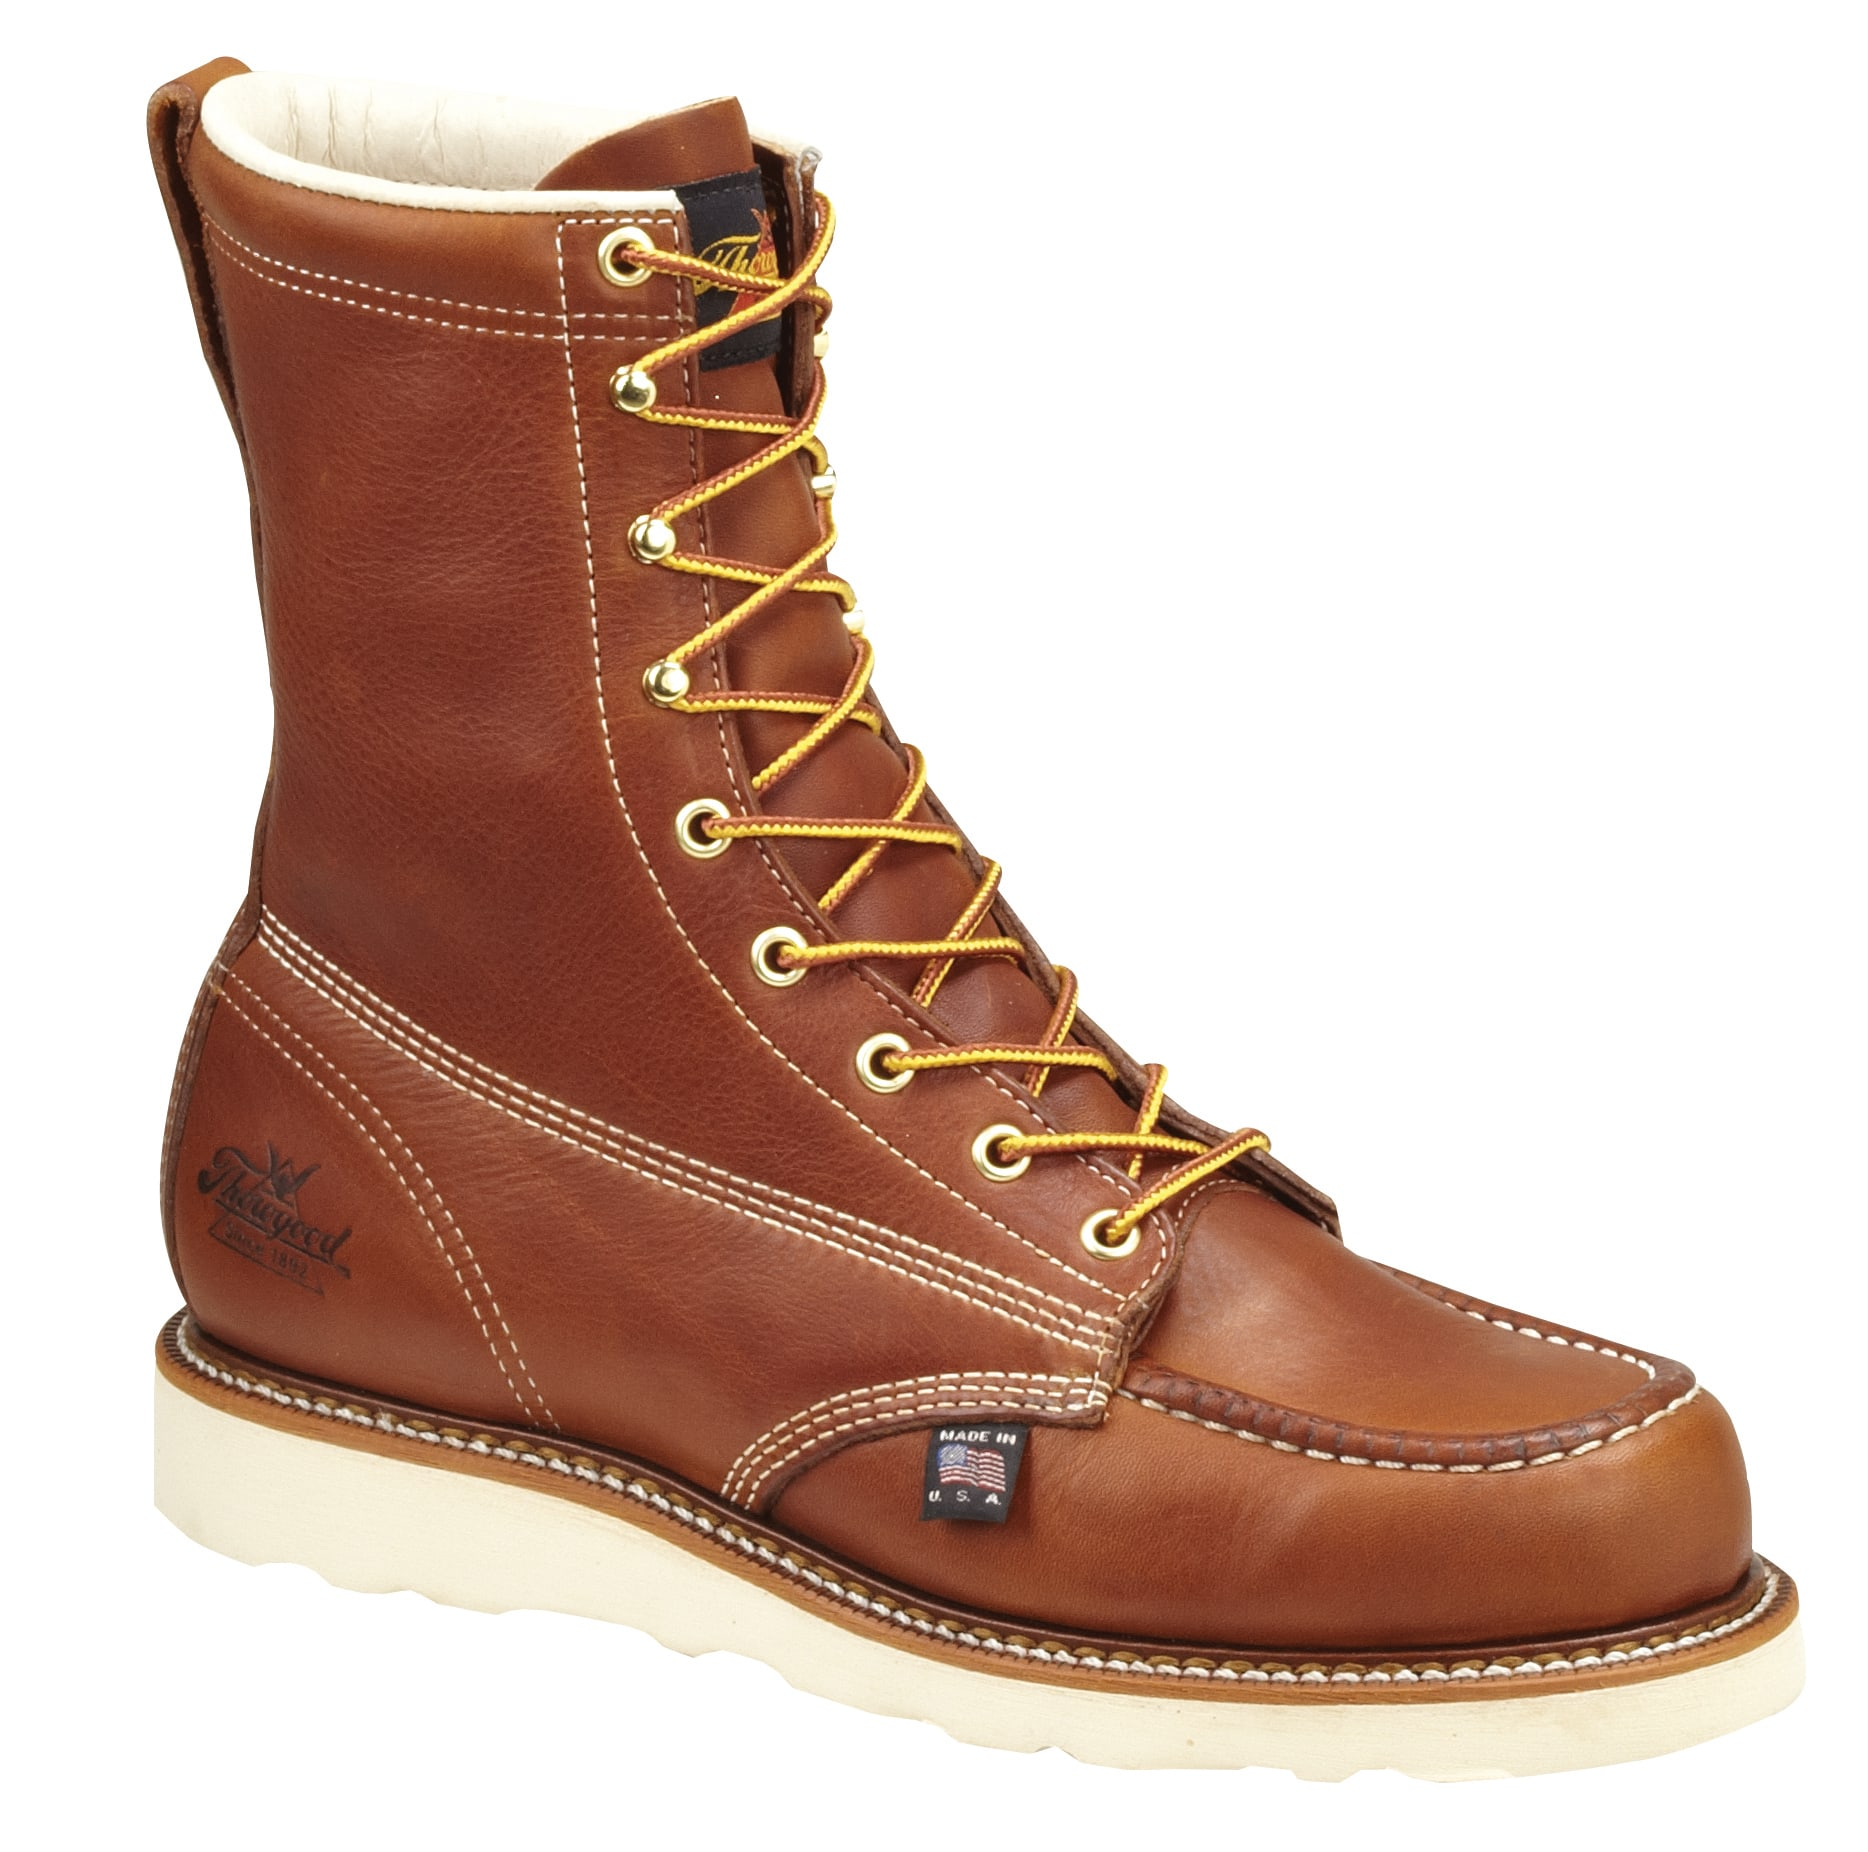 s thorogood steel toe boots 804 4208 froutlet